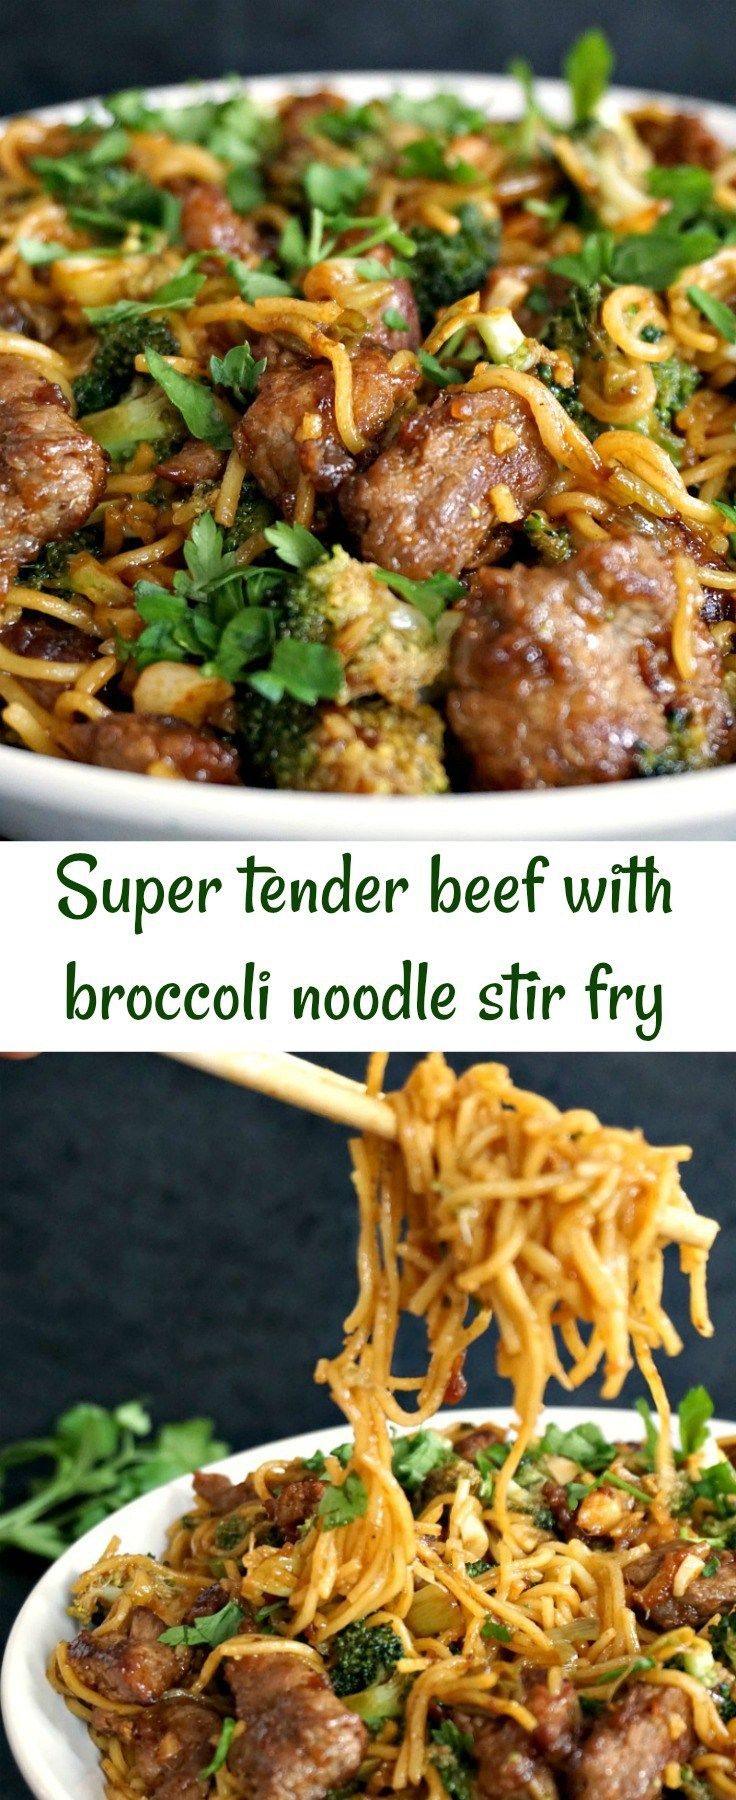 Super tender beef with broccolli noodle stir fry, a complete meal in just 15 minutes (apart from marinating). Chinese food at its finest!